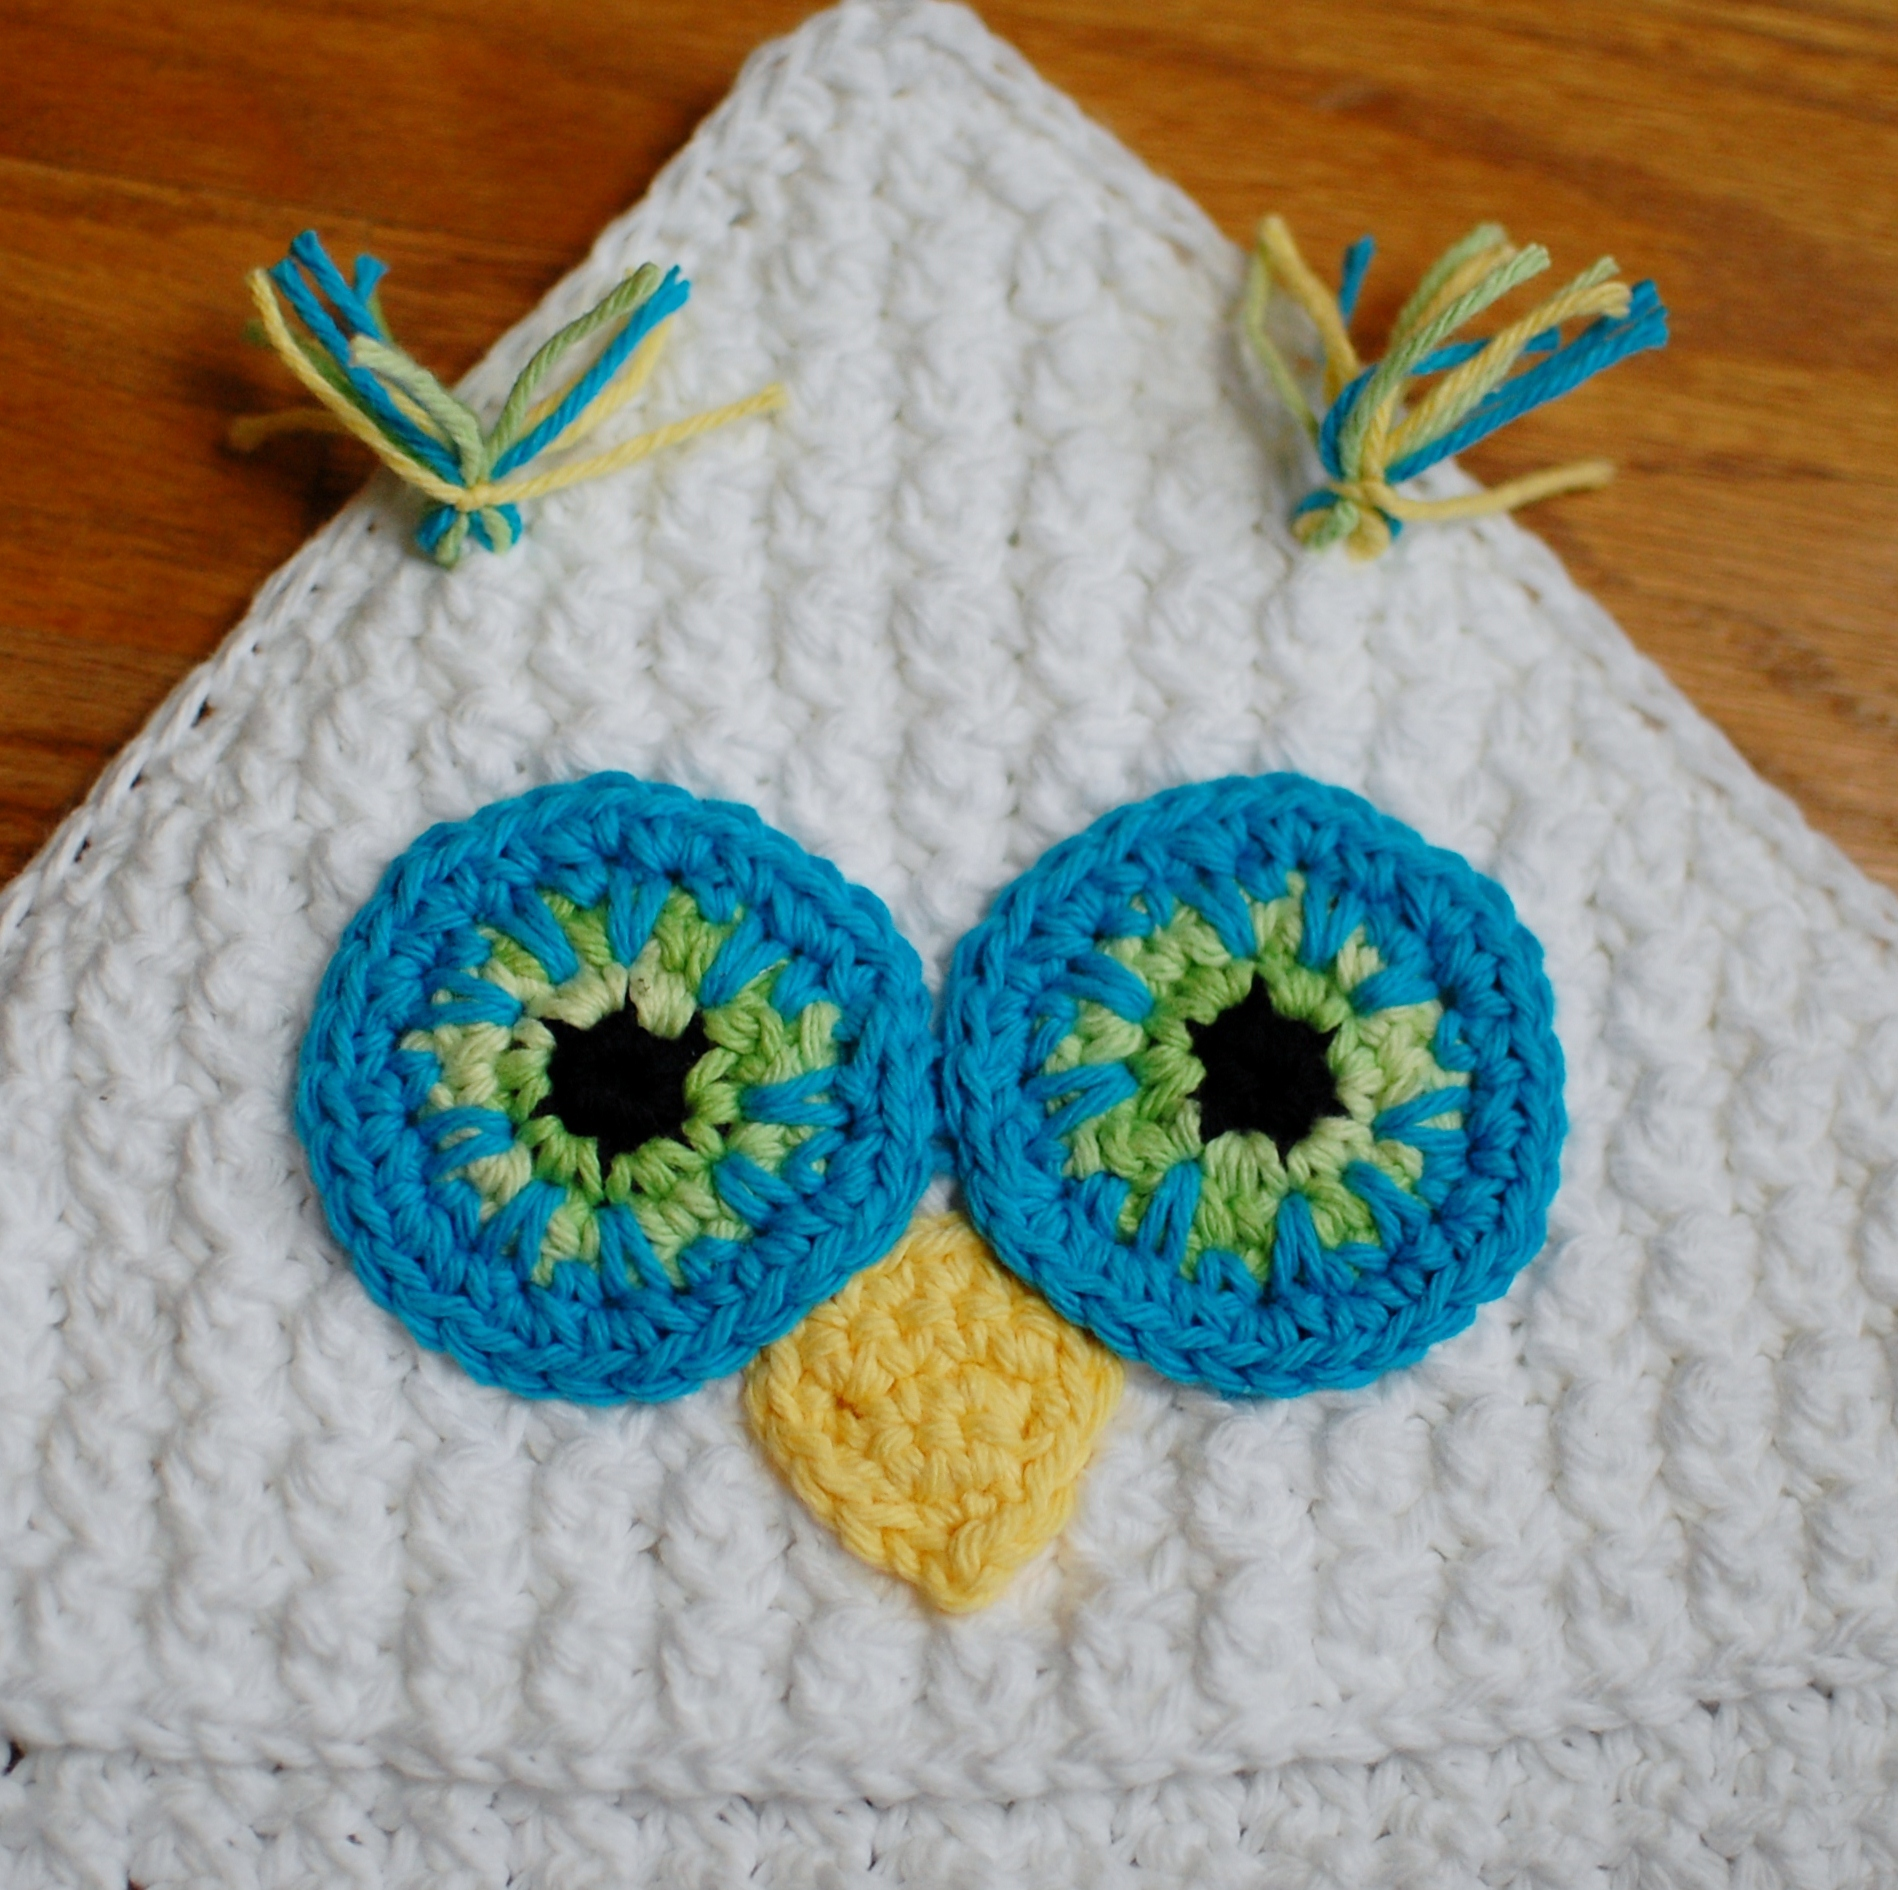 Crochet Pattern Owl Hooded Baby Towel Also Makes A Great Hooded Blanket Petals To Picots Online Store Powered By Storenvy